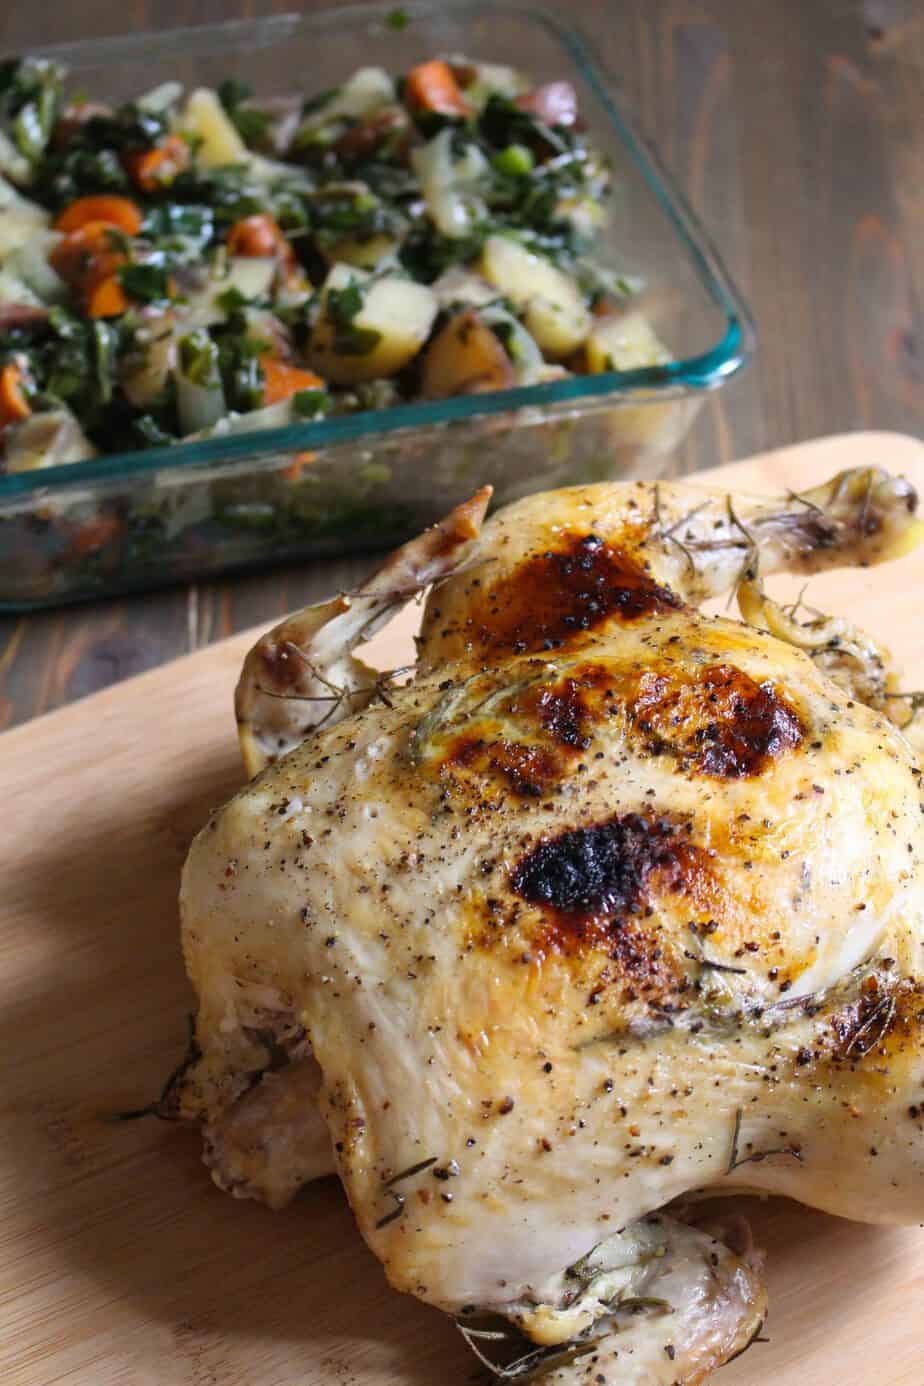 whole-chicken-in-a-slow-cooker-with-potatoes-and-vegetables-frugalnutrition-com